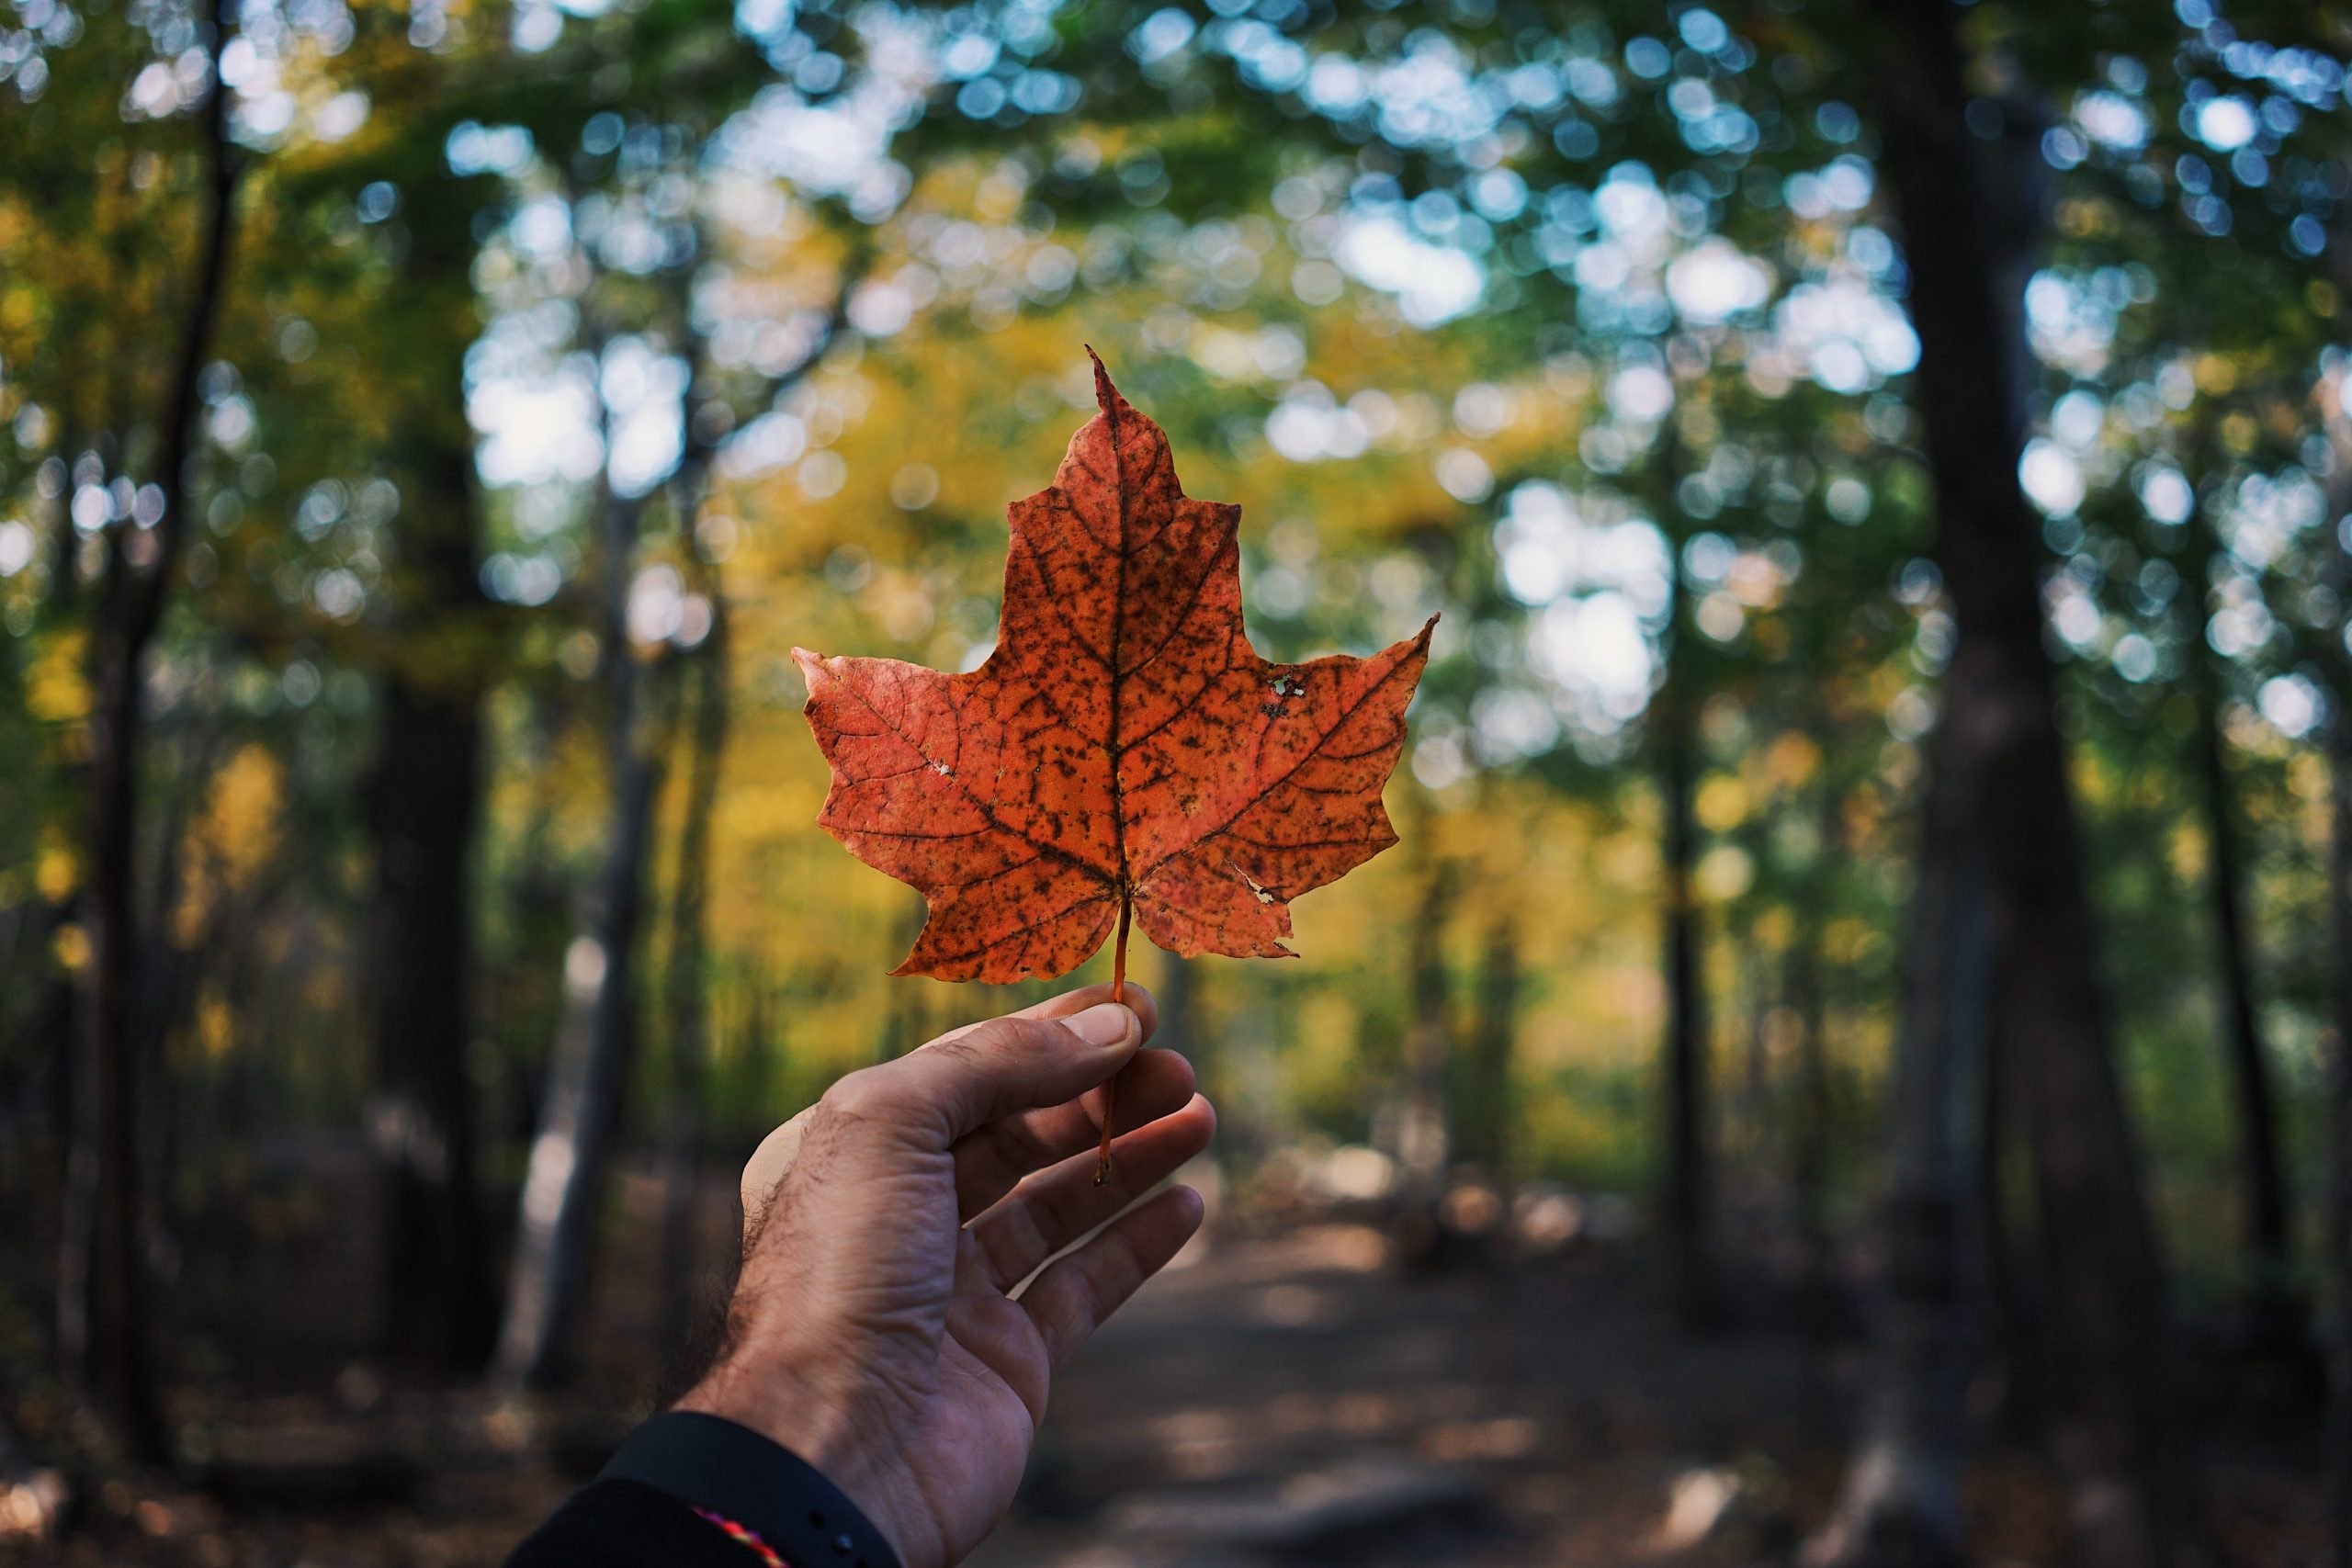 A person holding the Maple leaf, the Symbol of Canada